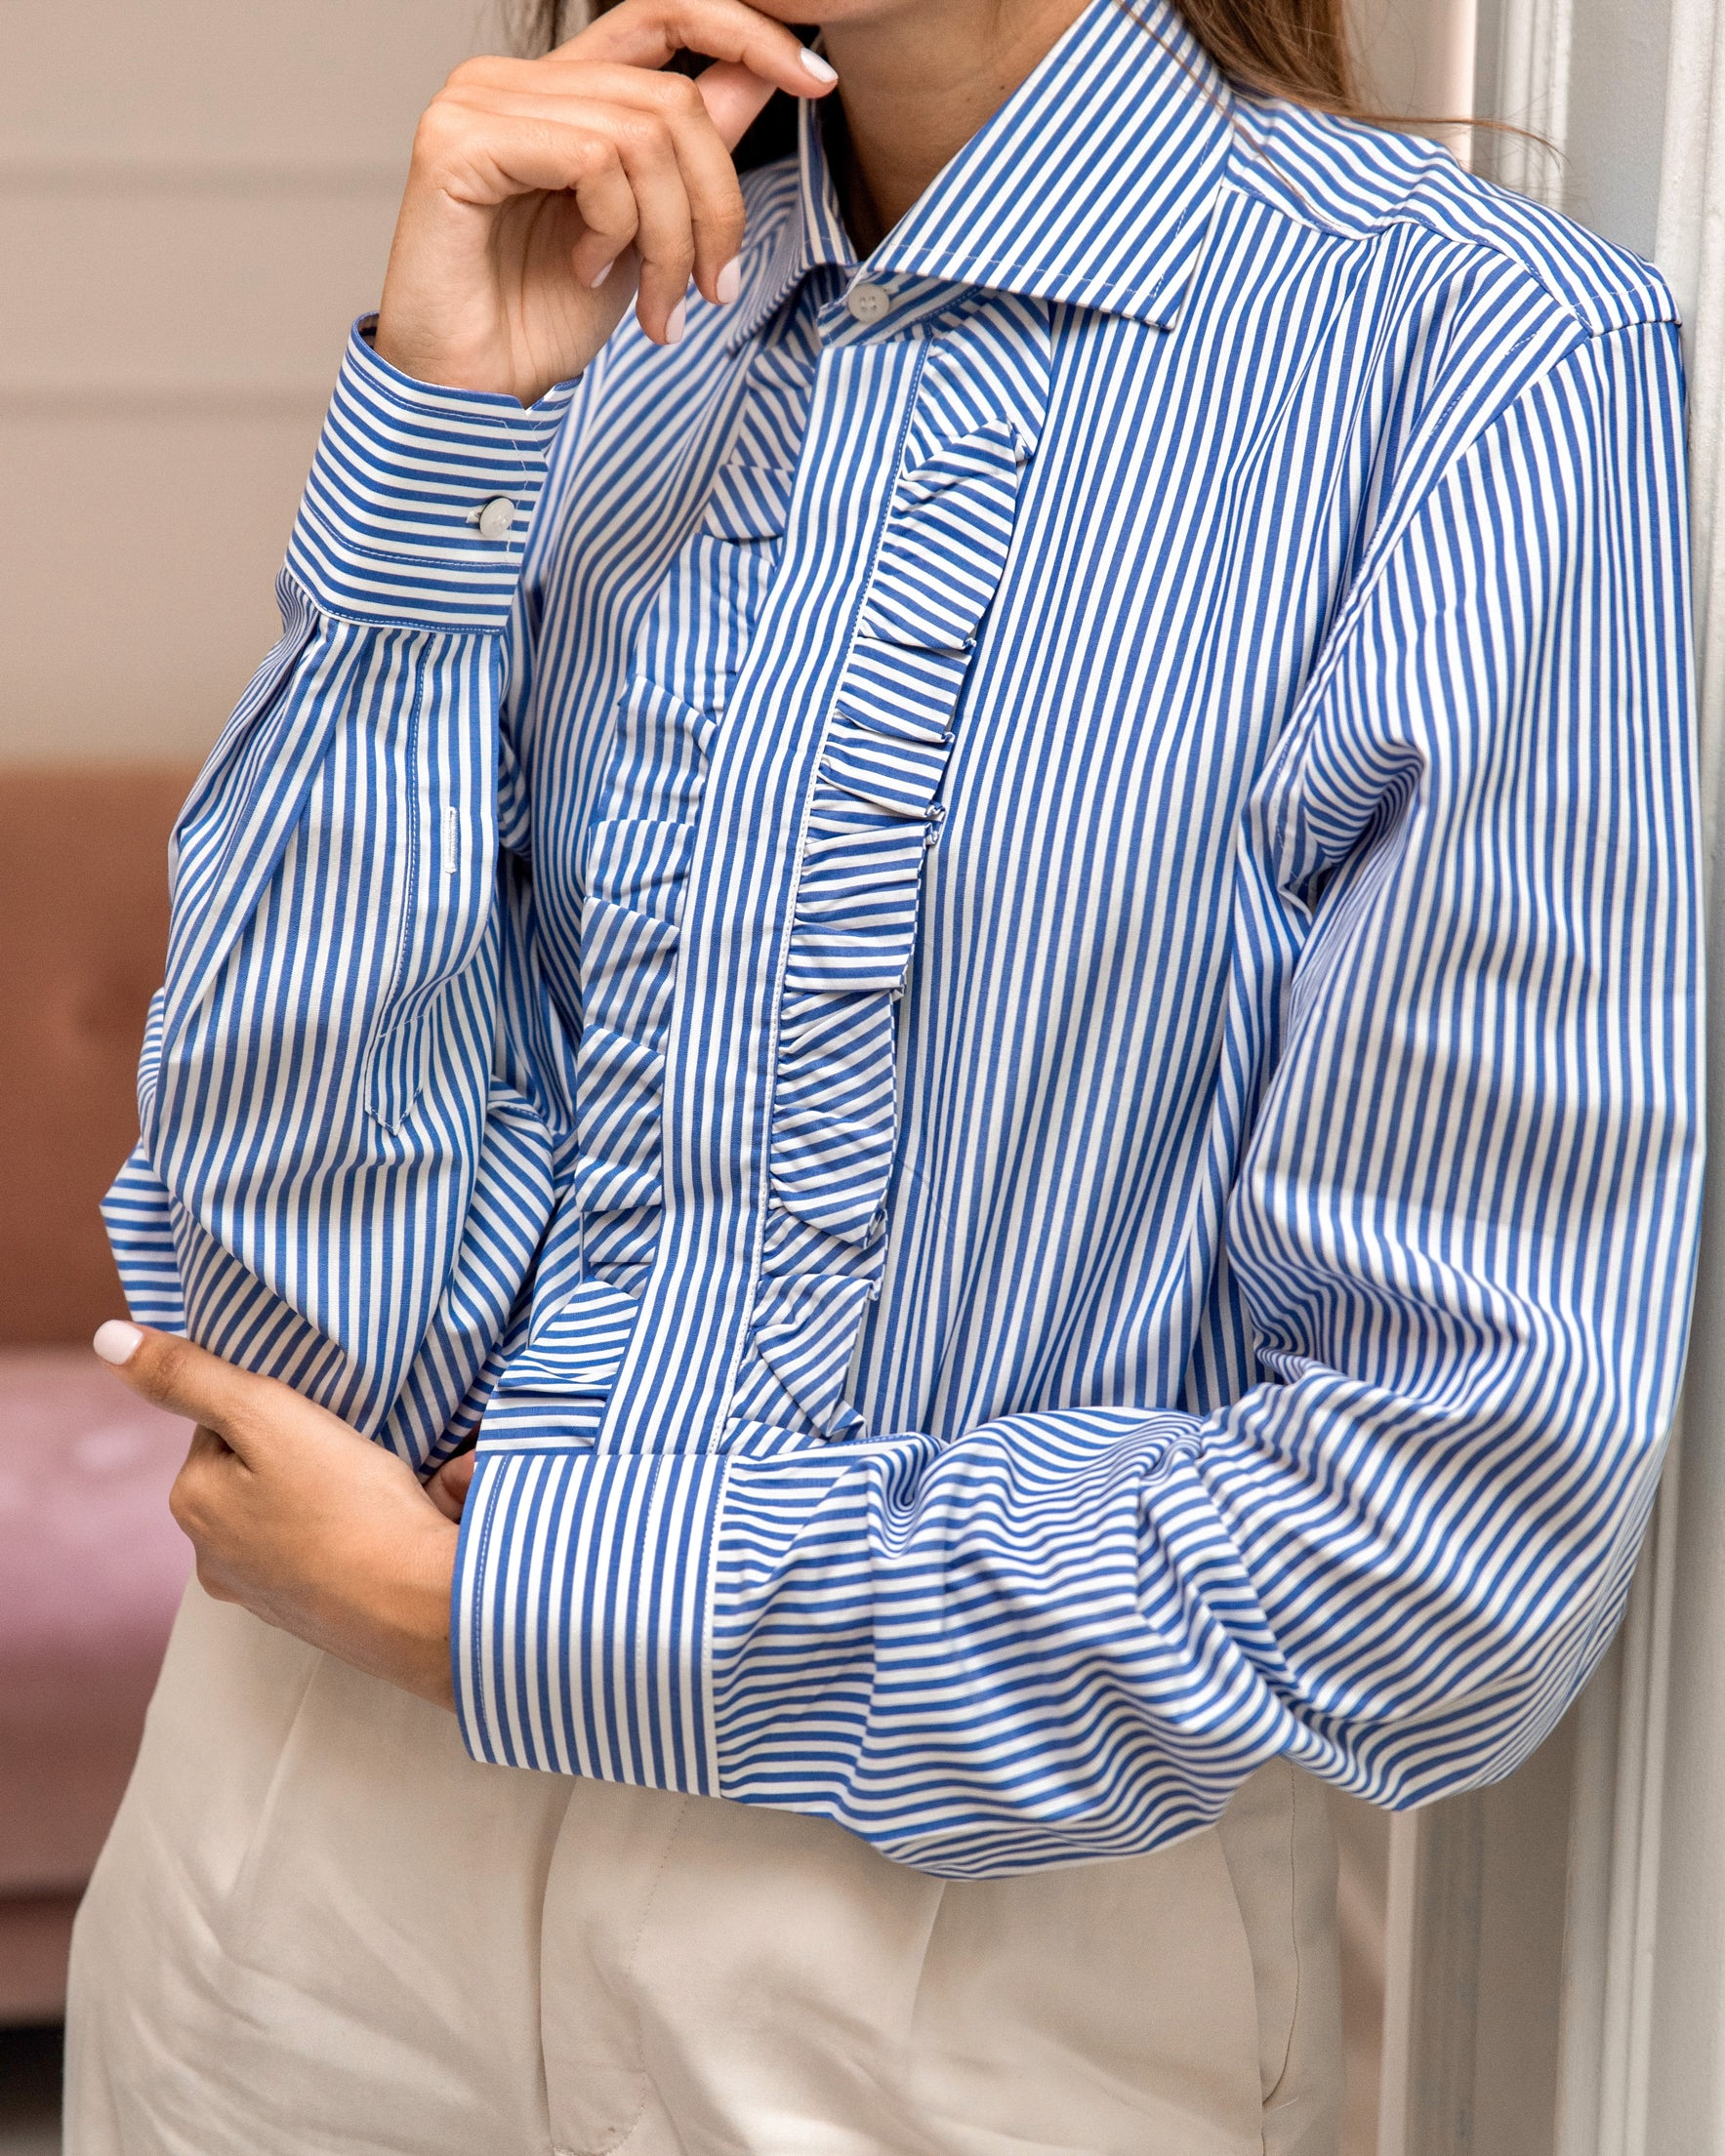 WOMEN'S RUFFLED COTTON STRIPED BLUE SHIRT